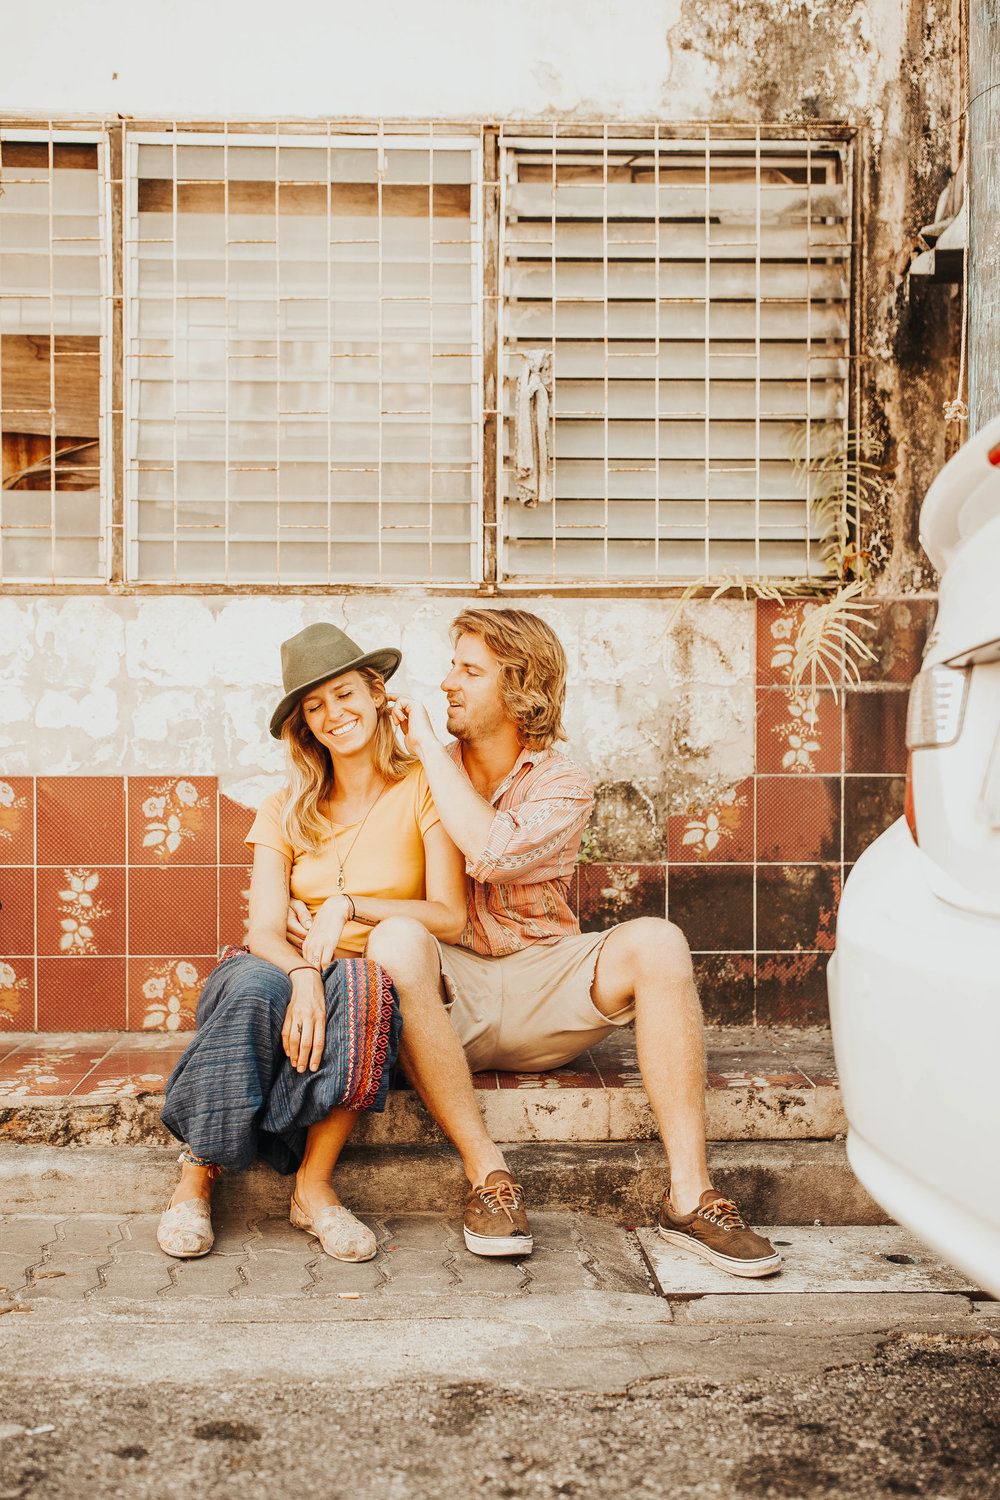 Julie and Will Old Town Phuket Couples Session 27.jpg